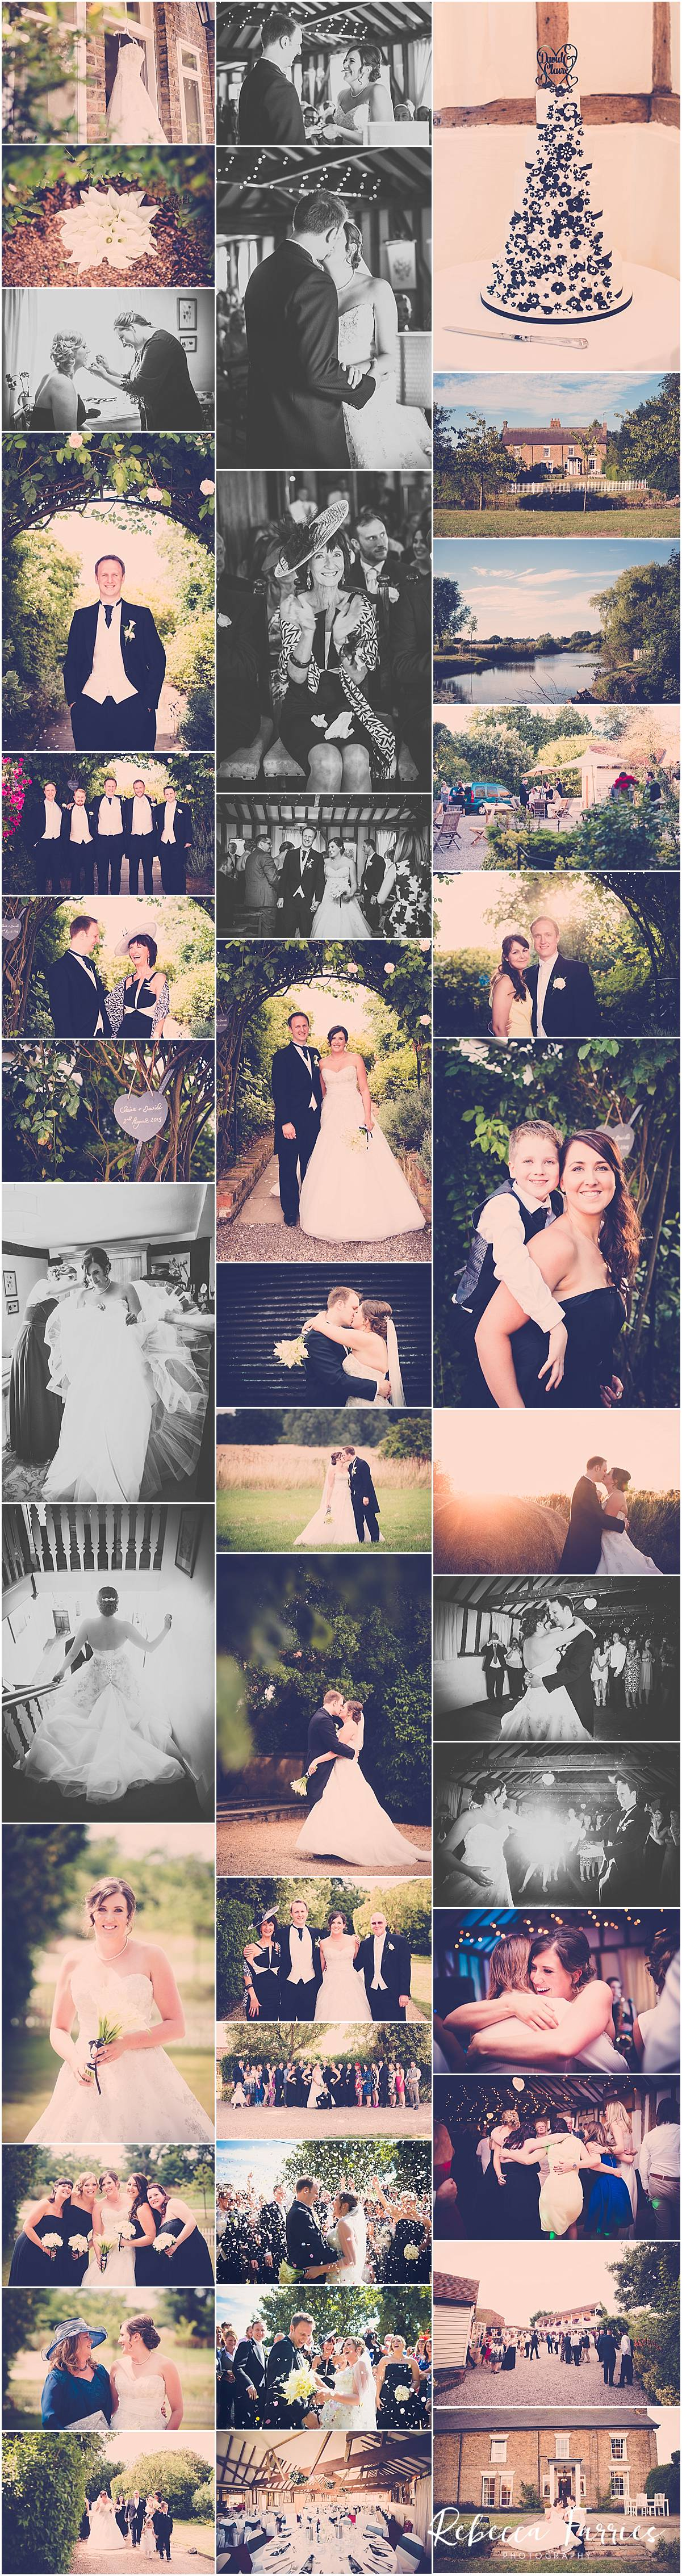 Wedding Photography collage from The Reid Rooms